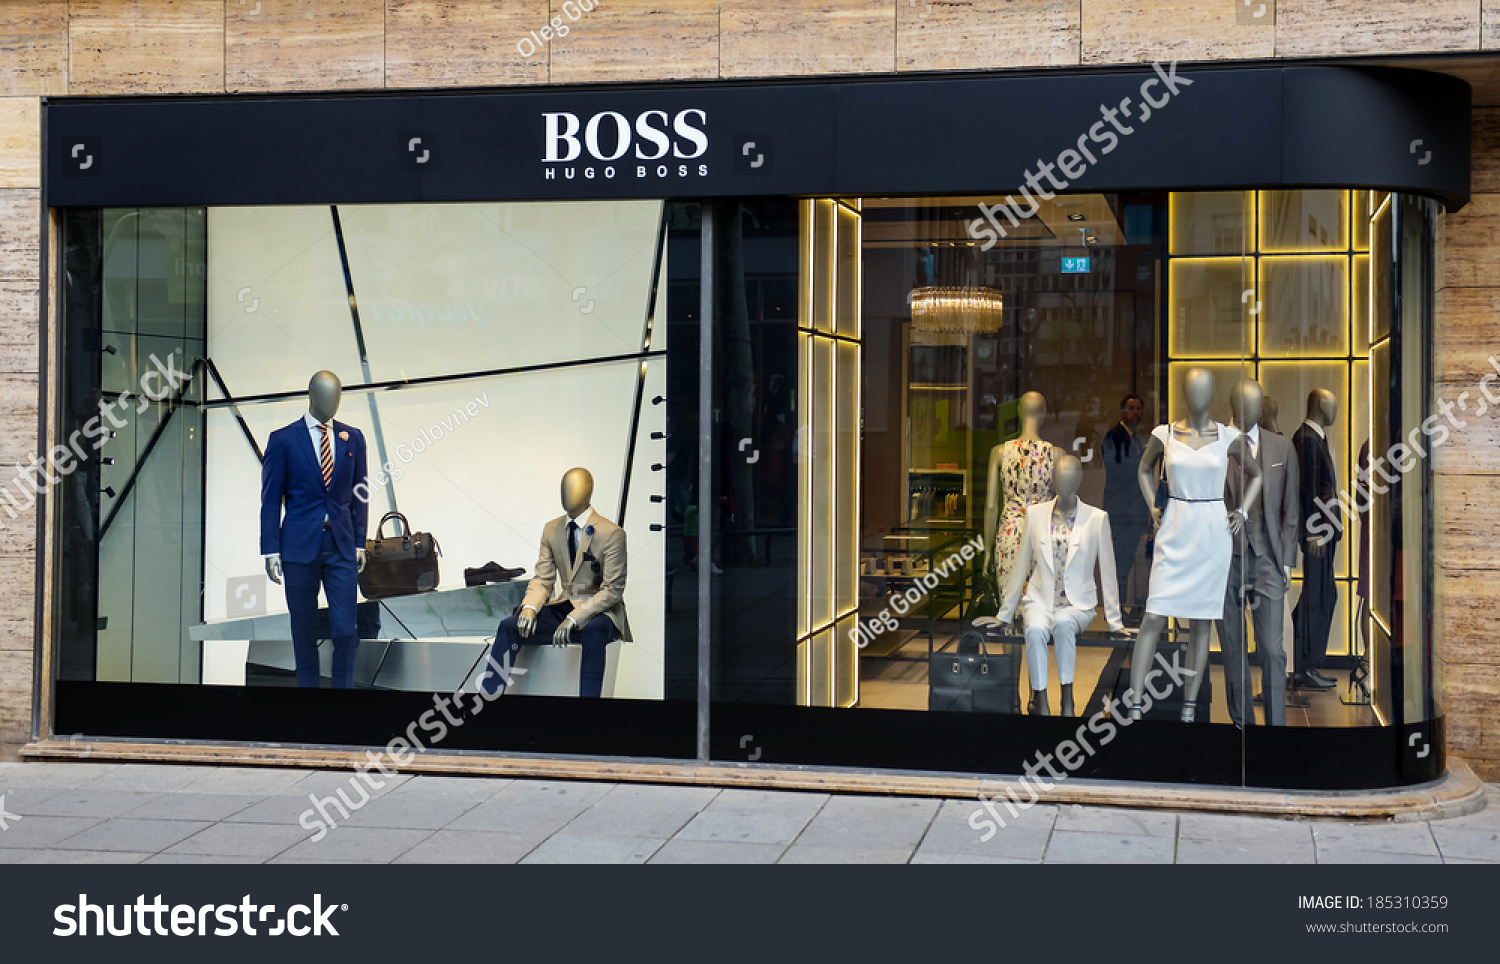 metzingen hugo boss outlet prices. Black Bedroom Furniture Sets. Home Design Ideas